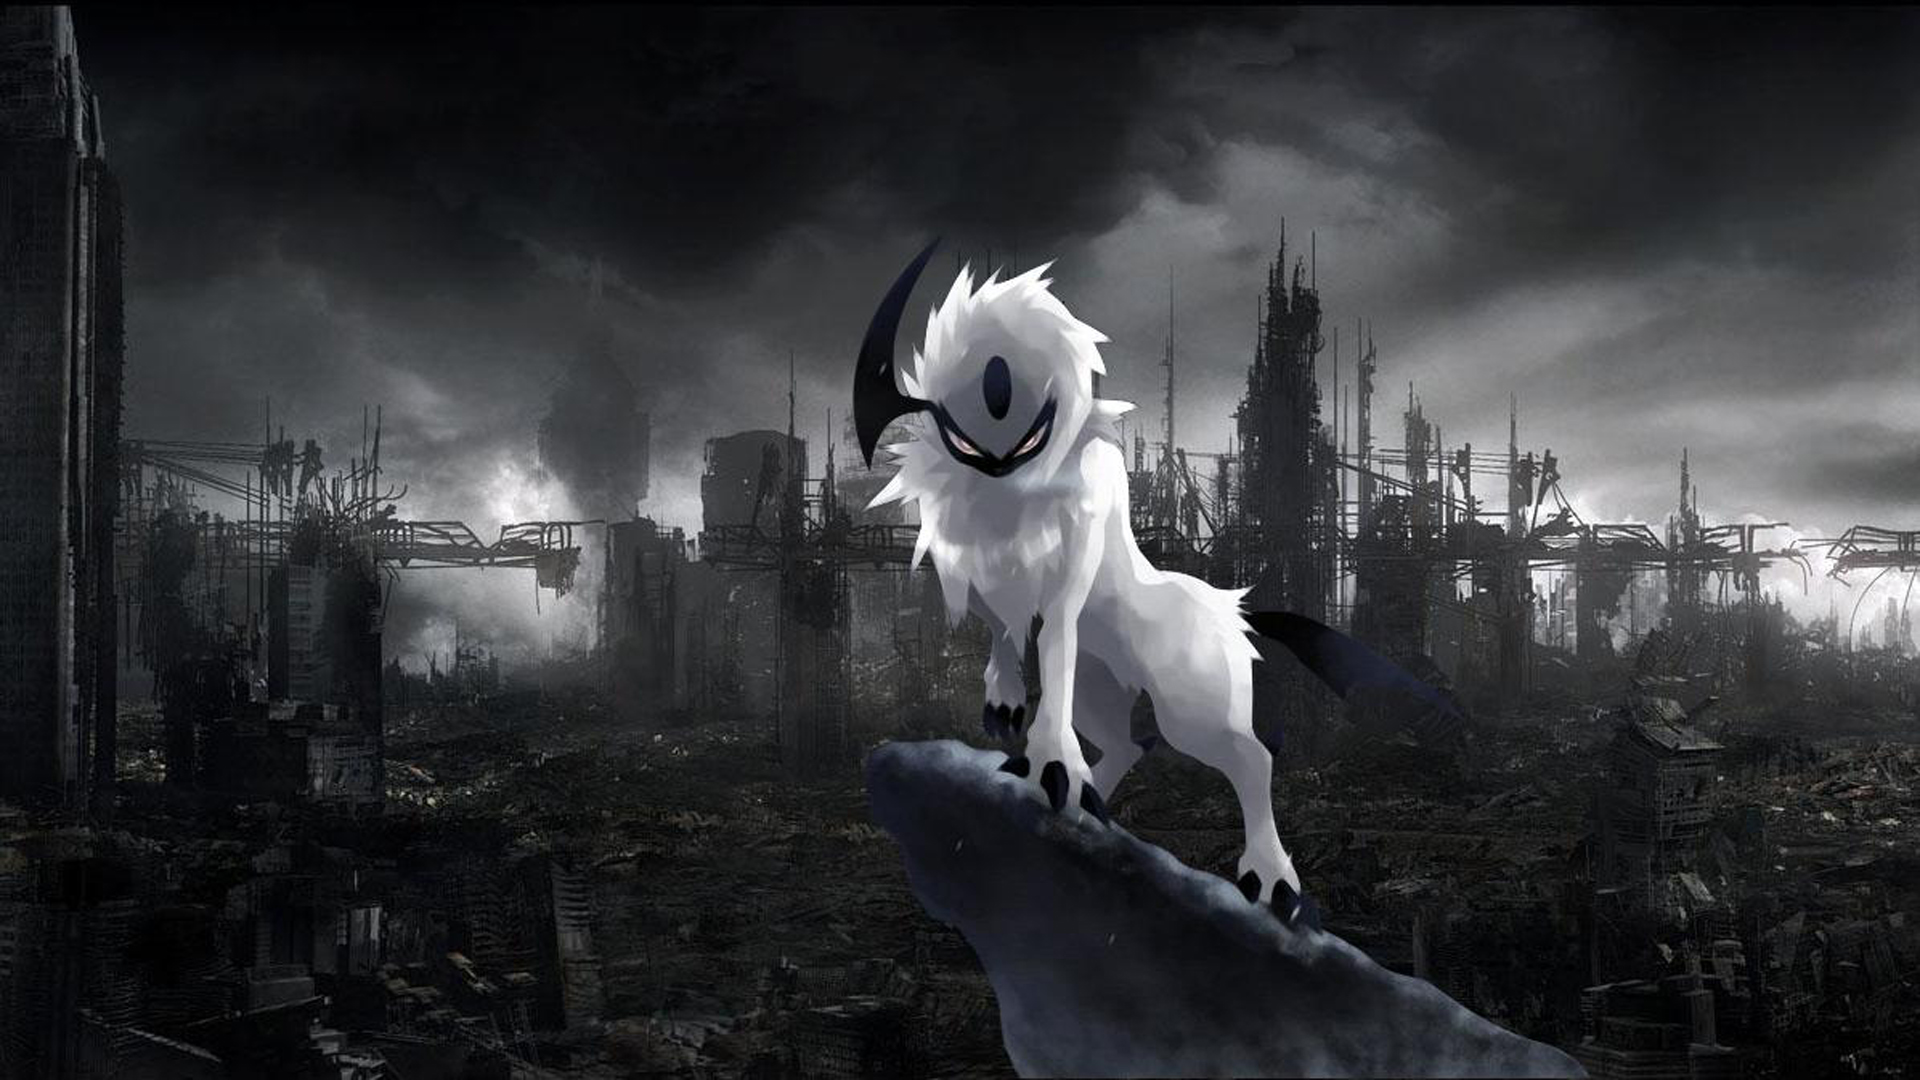 Pokemon Wallpaper Absol Images amp Pictures   Becuo 1920x1080